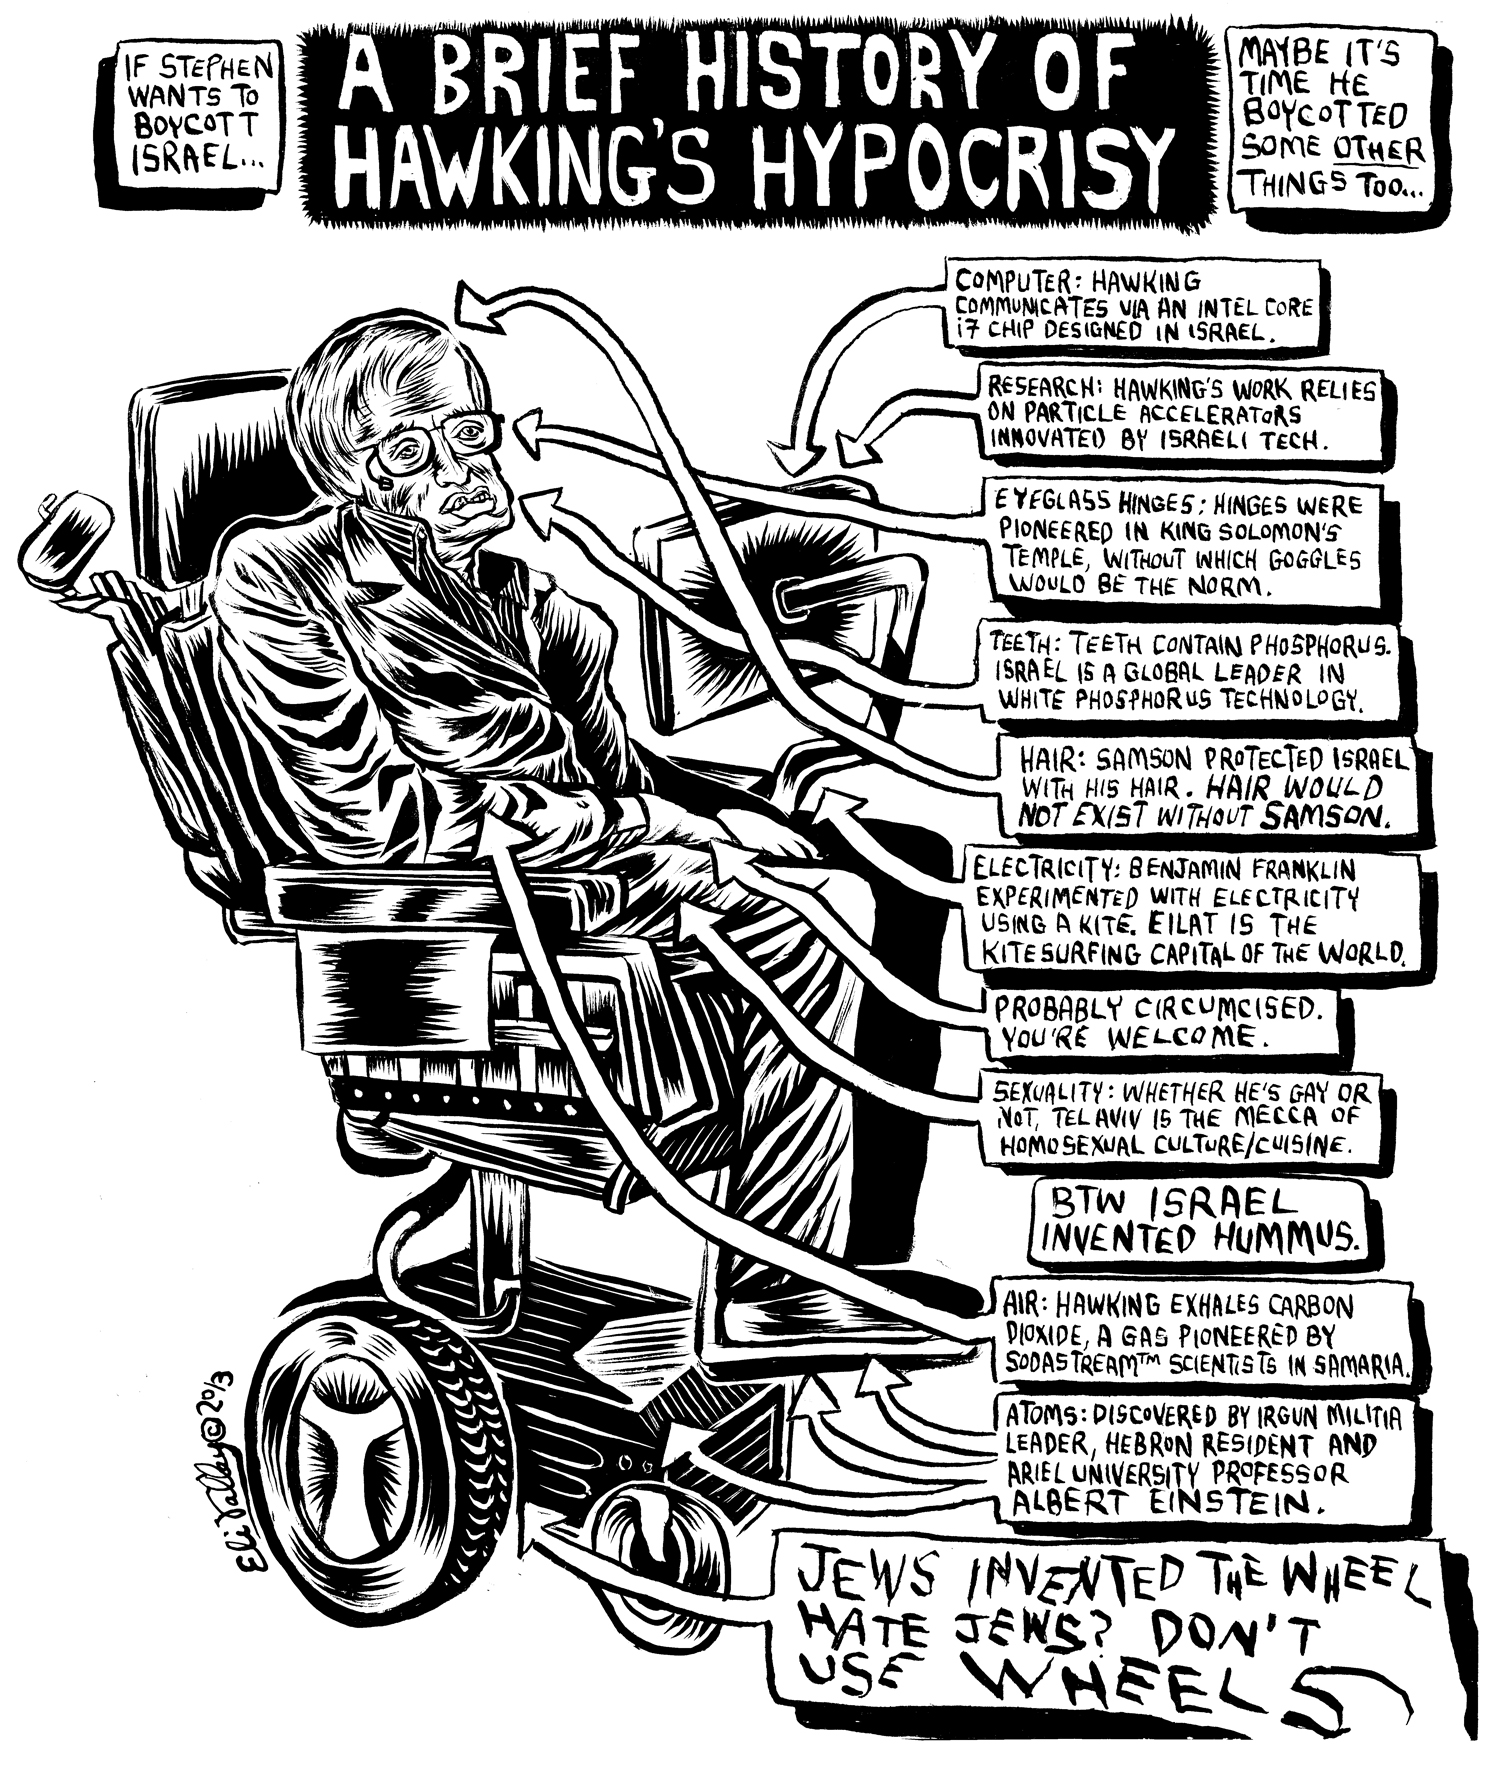 Brief History of Hawking's Hypocrisy. Forward, 5/14/13